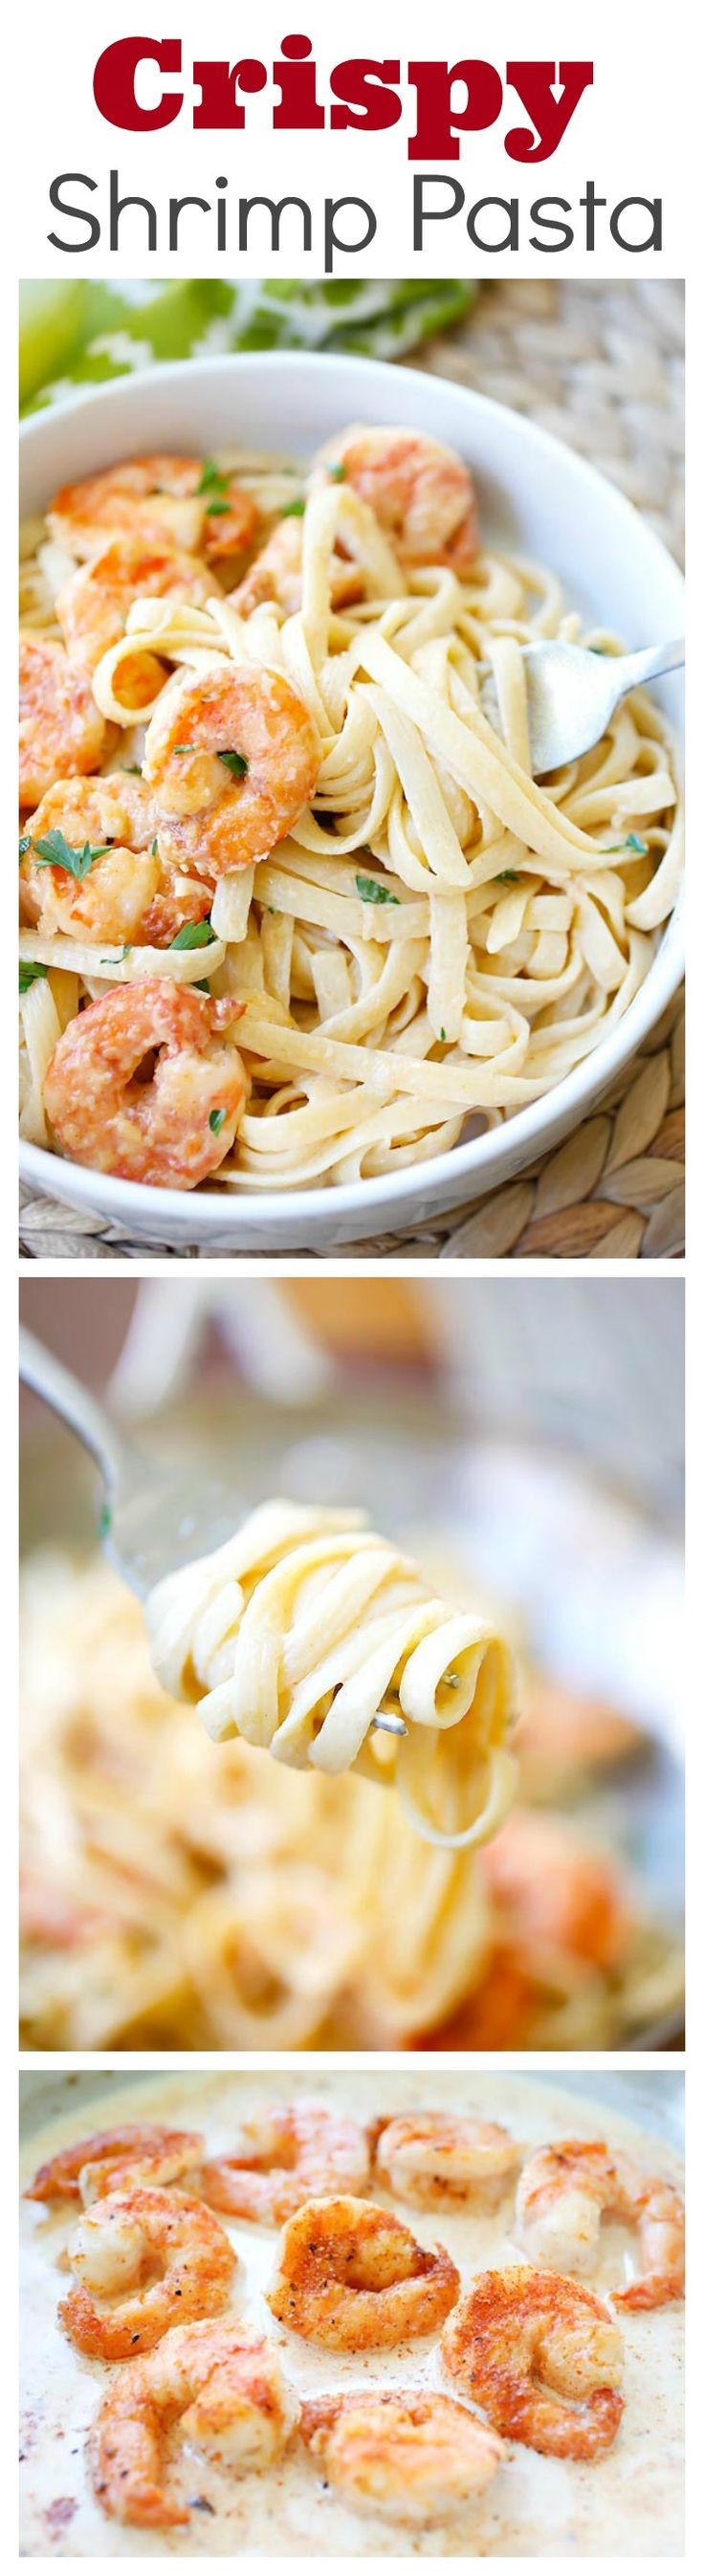 Crispy shrimp pasta – the best shrimp pasta ever with rich creamy sauce and cajun-seasoned crispy fried shrimp | rasamalaysia.com